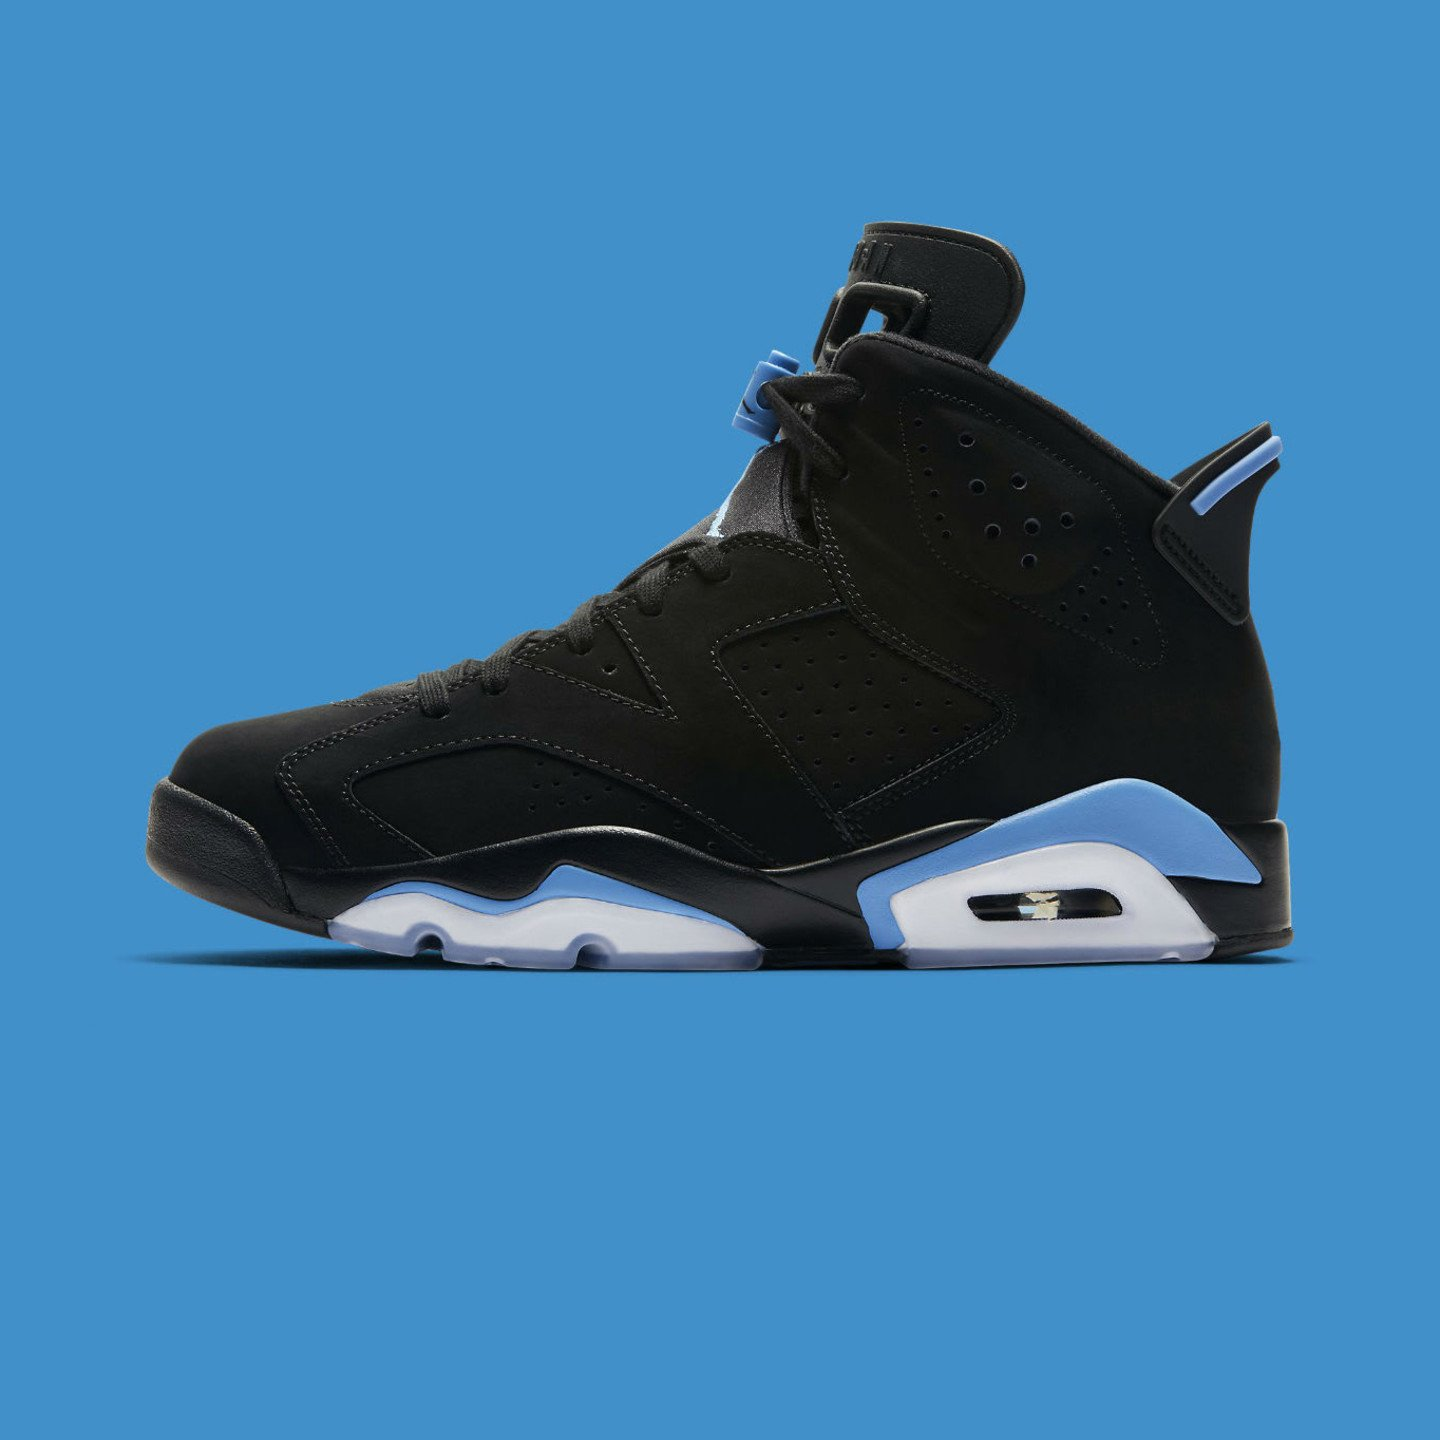 Jordan Air Jordan 6 Retro 'UNC' Black / University Blue 384664-006